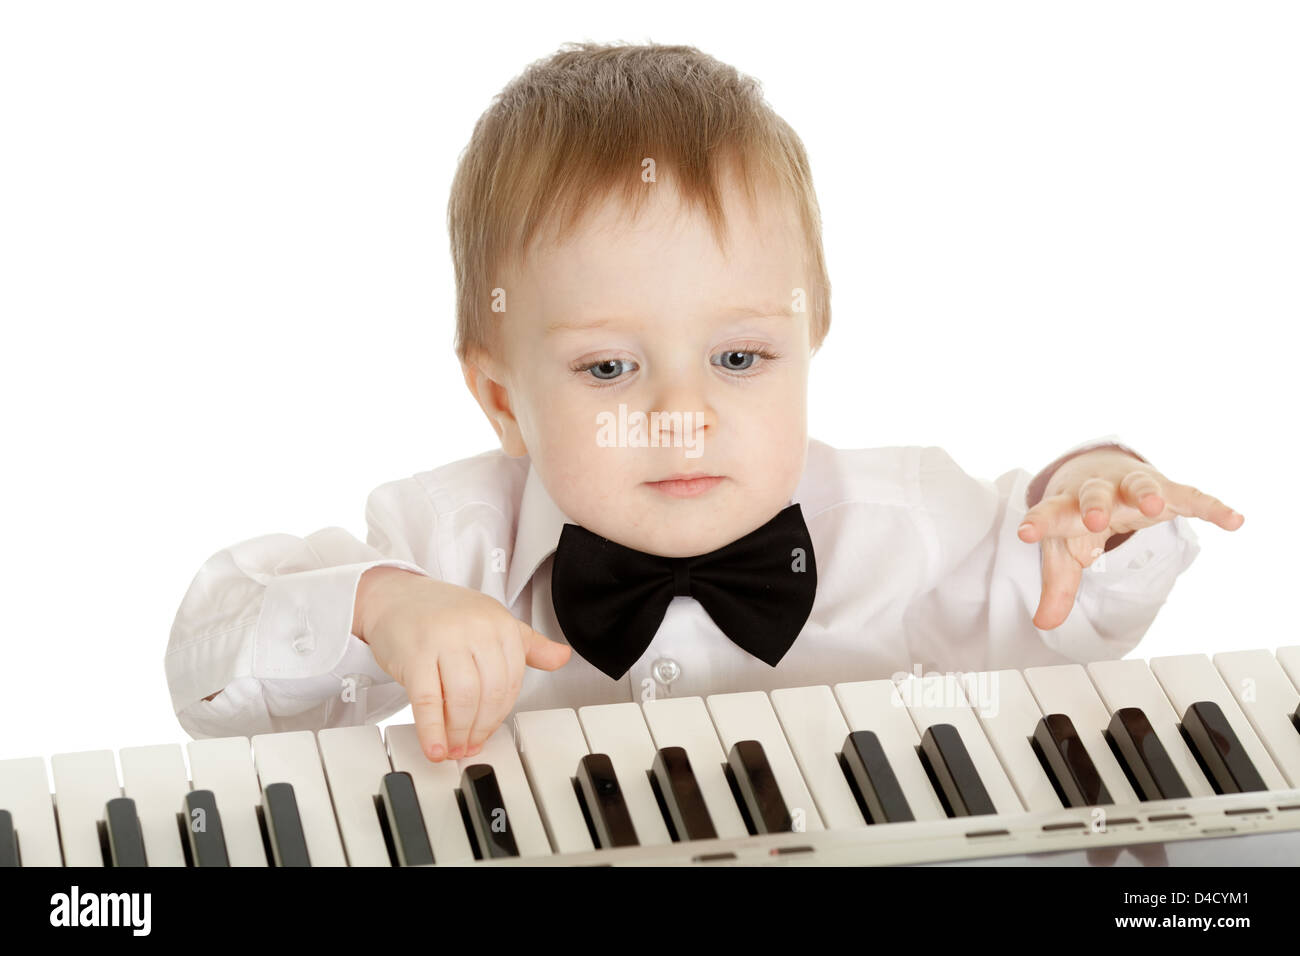 adorable child playing electronic piano - Stock Image